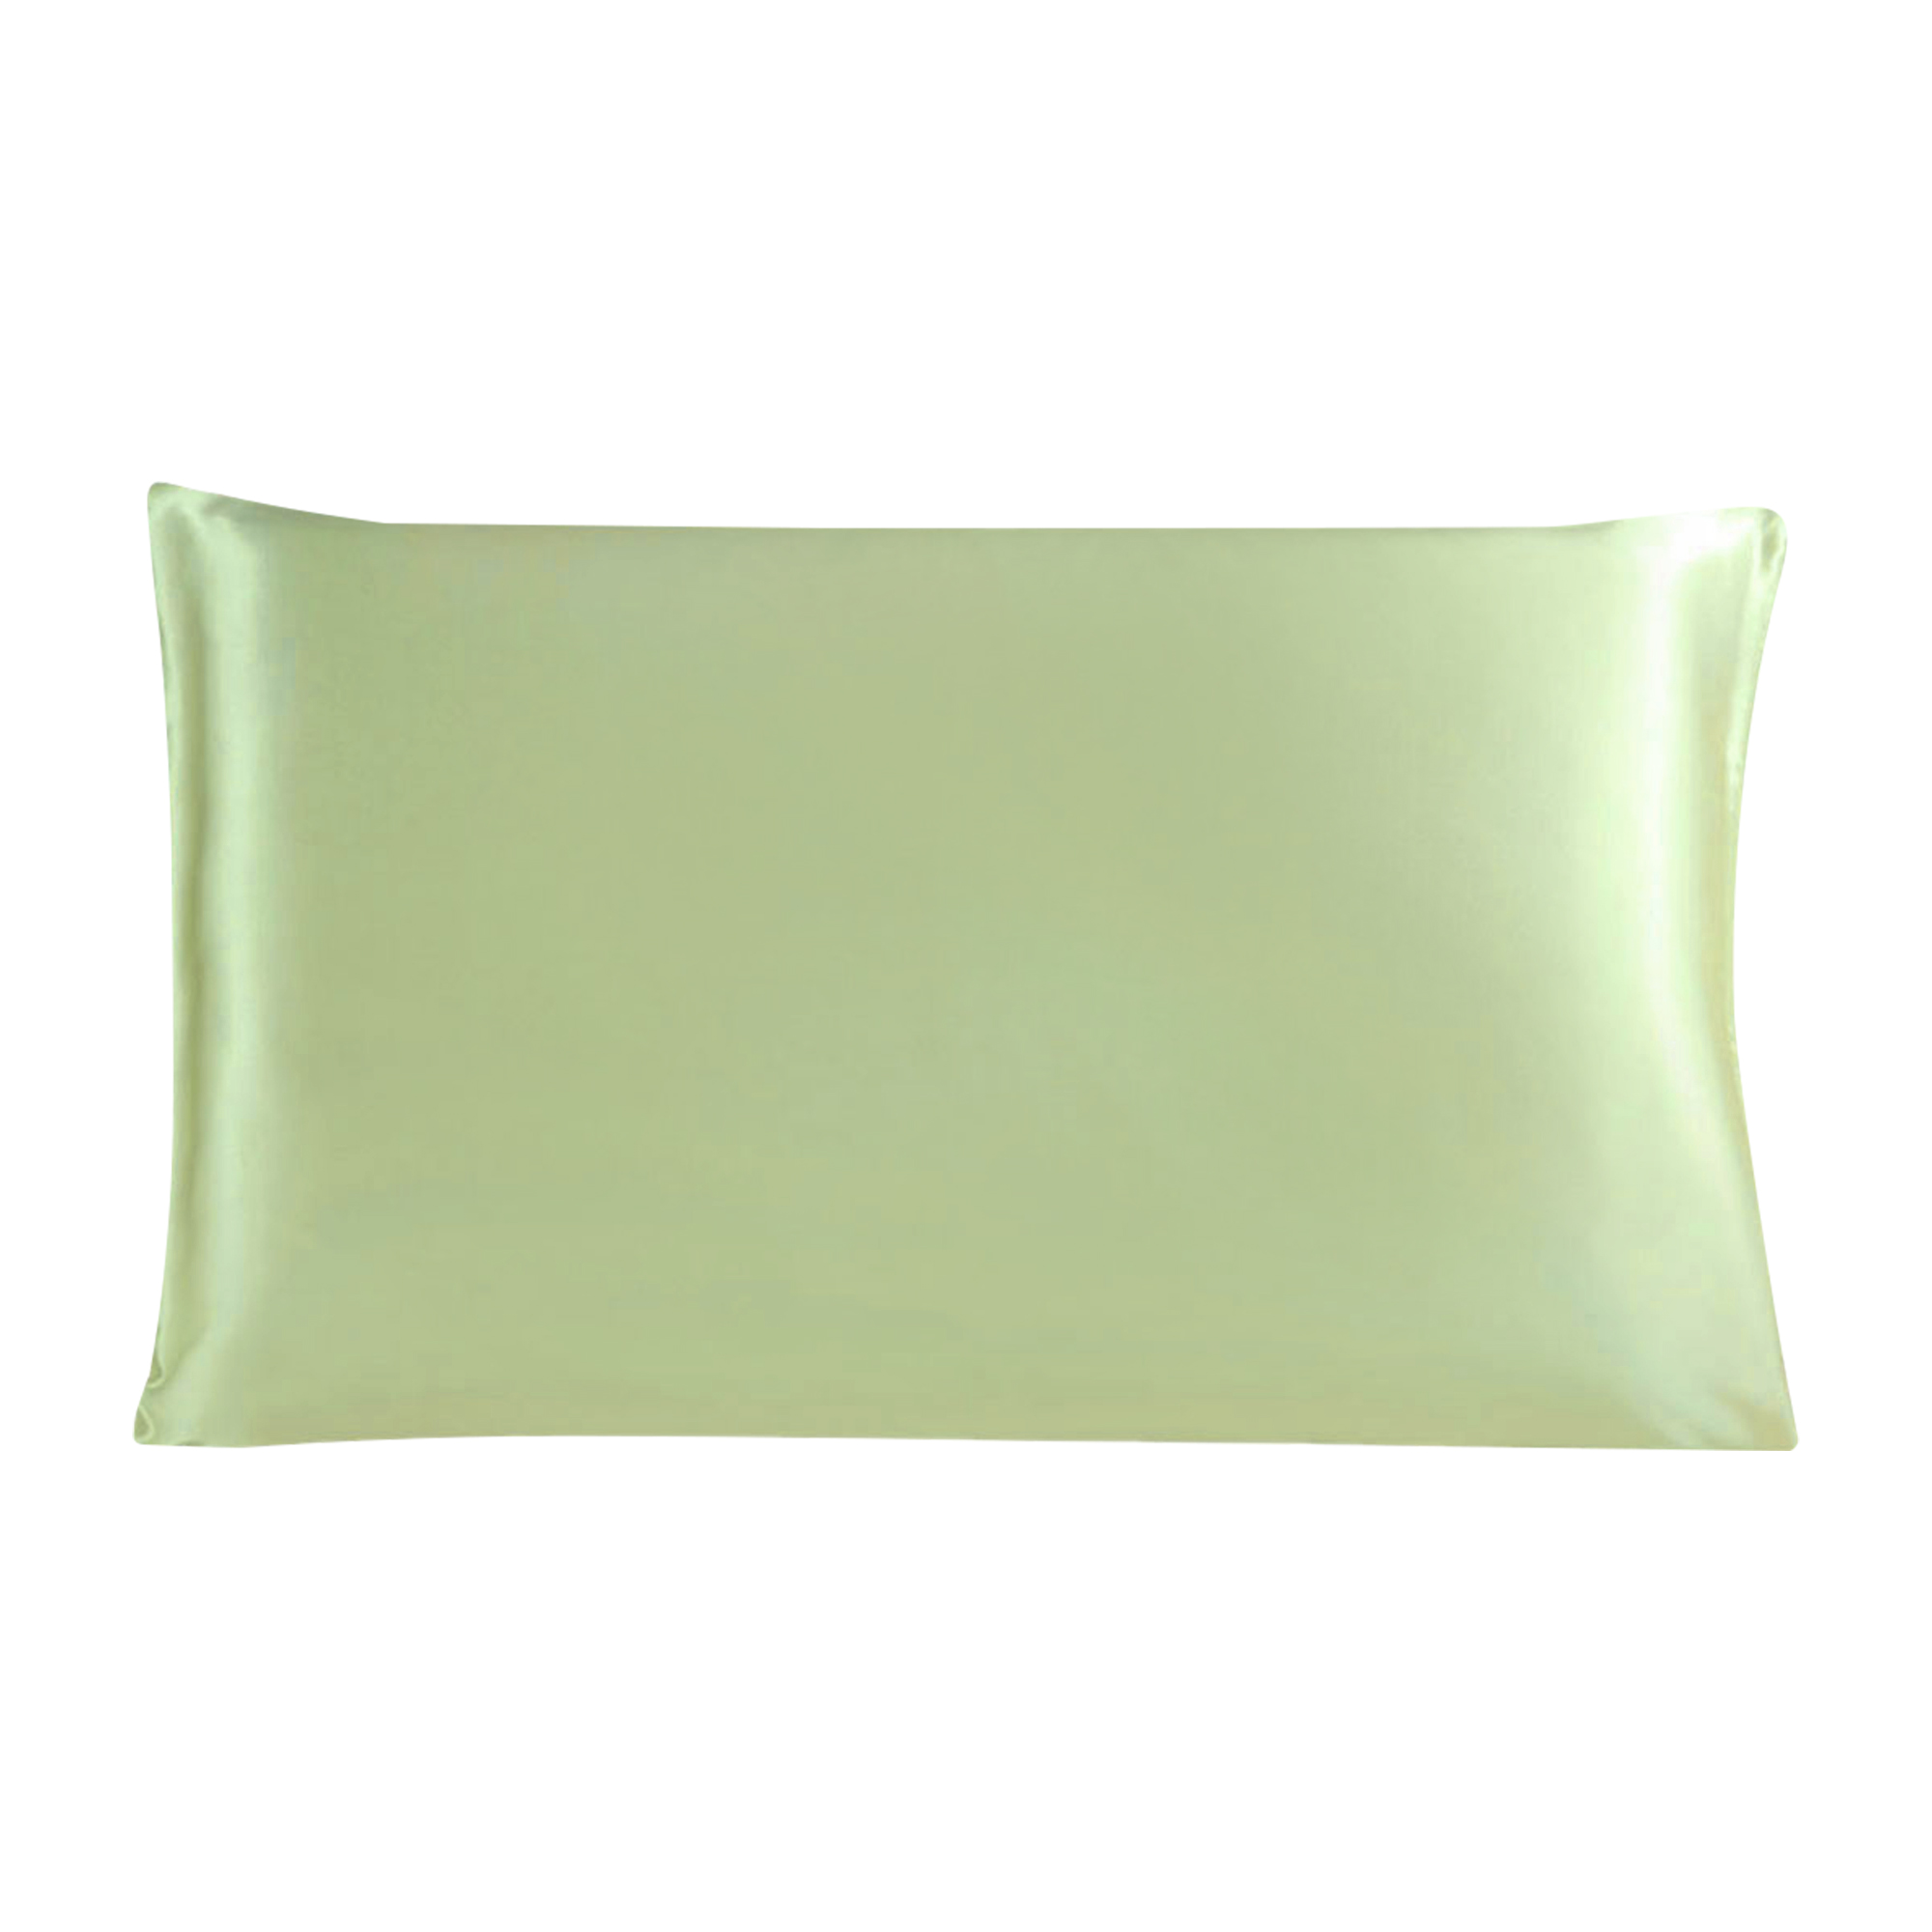 100% Mulberry Silk Fabric Pillow Case Cover Pillowcase Fruit Green King Size